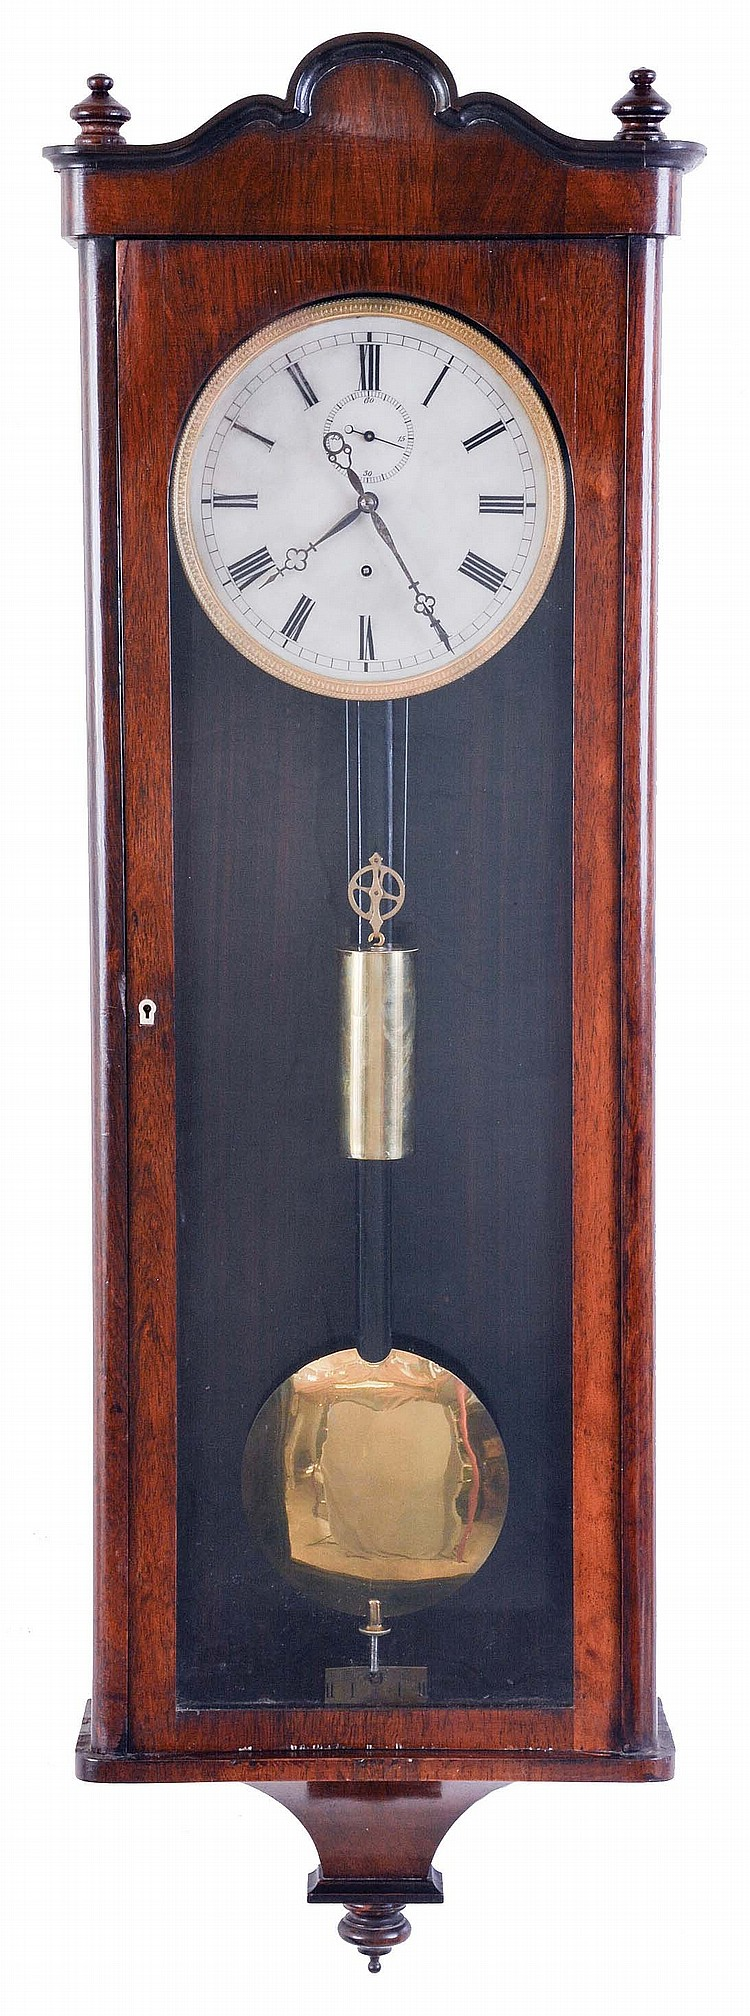 Germany, in Viennese style, a Biedermeier hanging regulator, rosewood veneered case with incurved bottom, and shaped top with narrow cavetto molding, Roman numerals on one piece alabaster or glass dial, 8 day timepiece movement, brass pendulum with